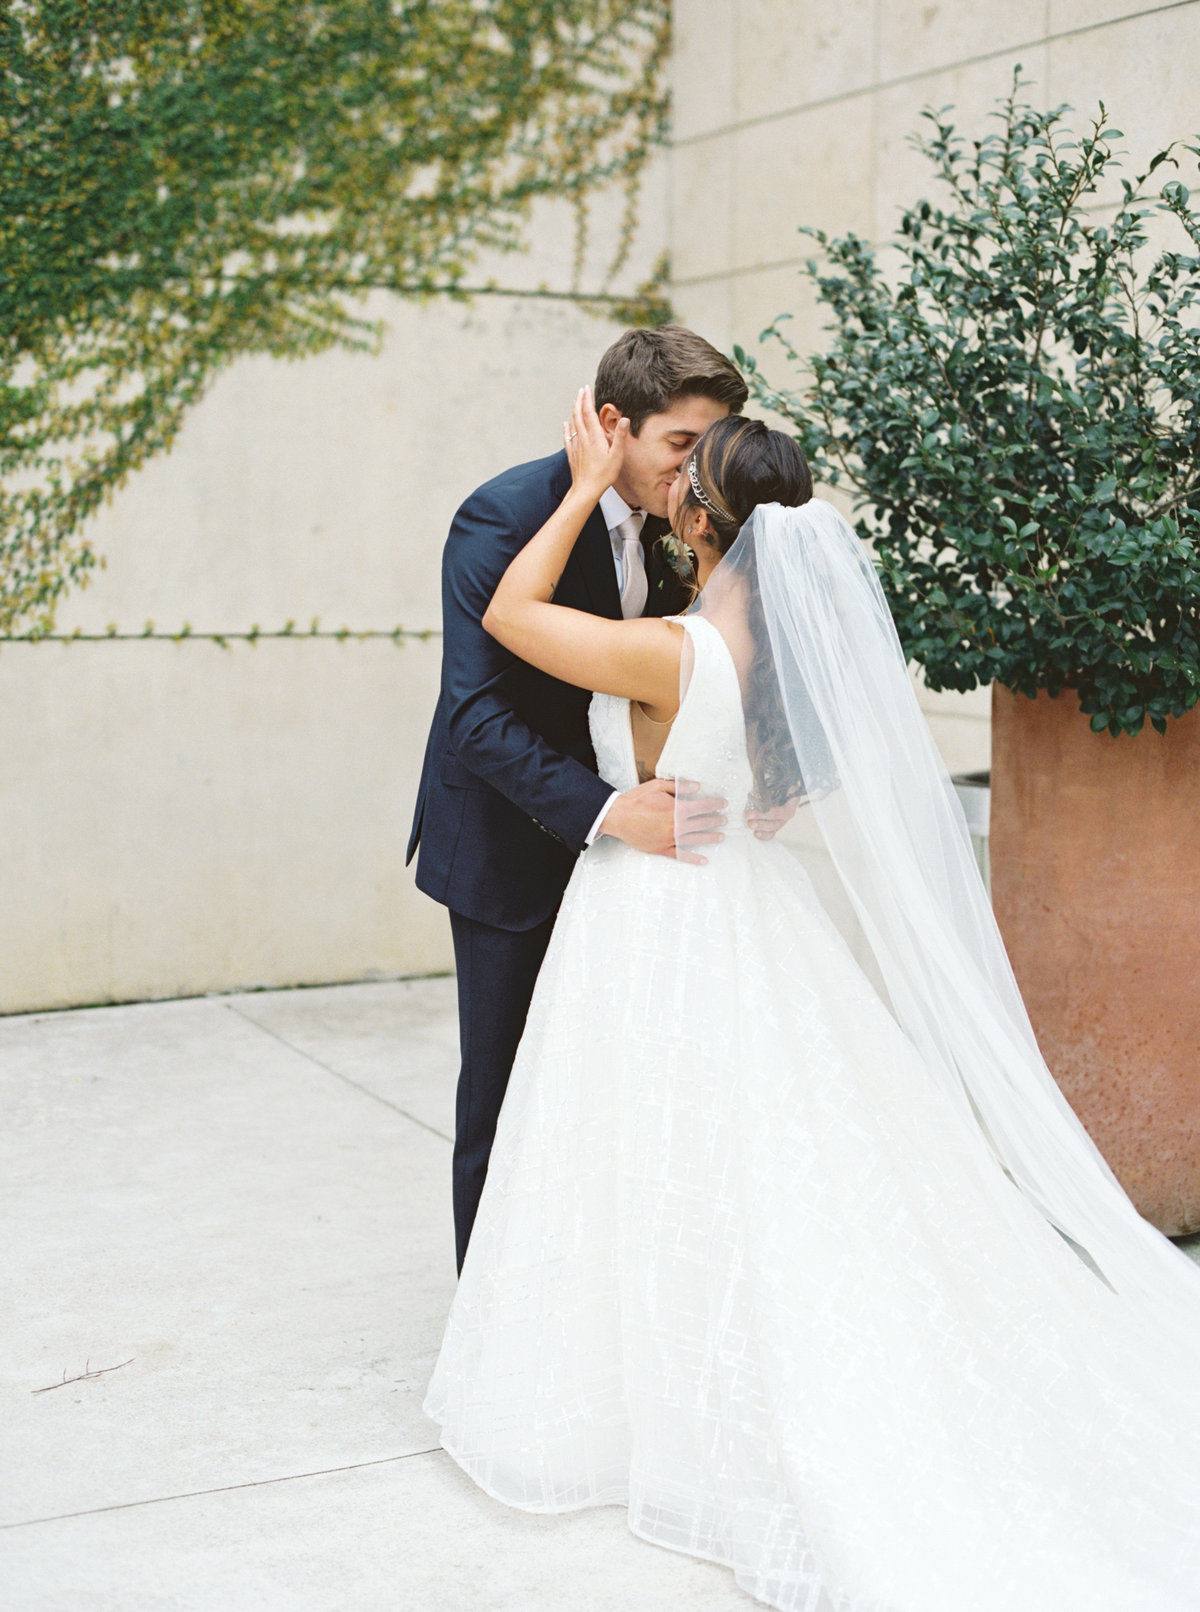 Danielle + Craig Atlanta History Center Wedding - Cassie Valente Photography 0140